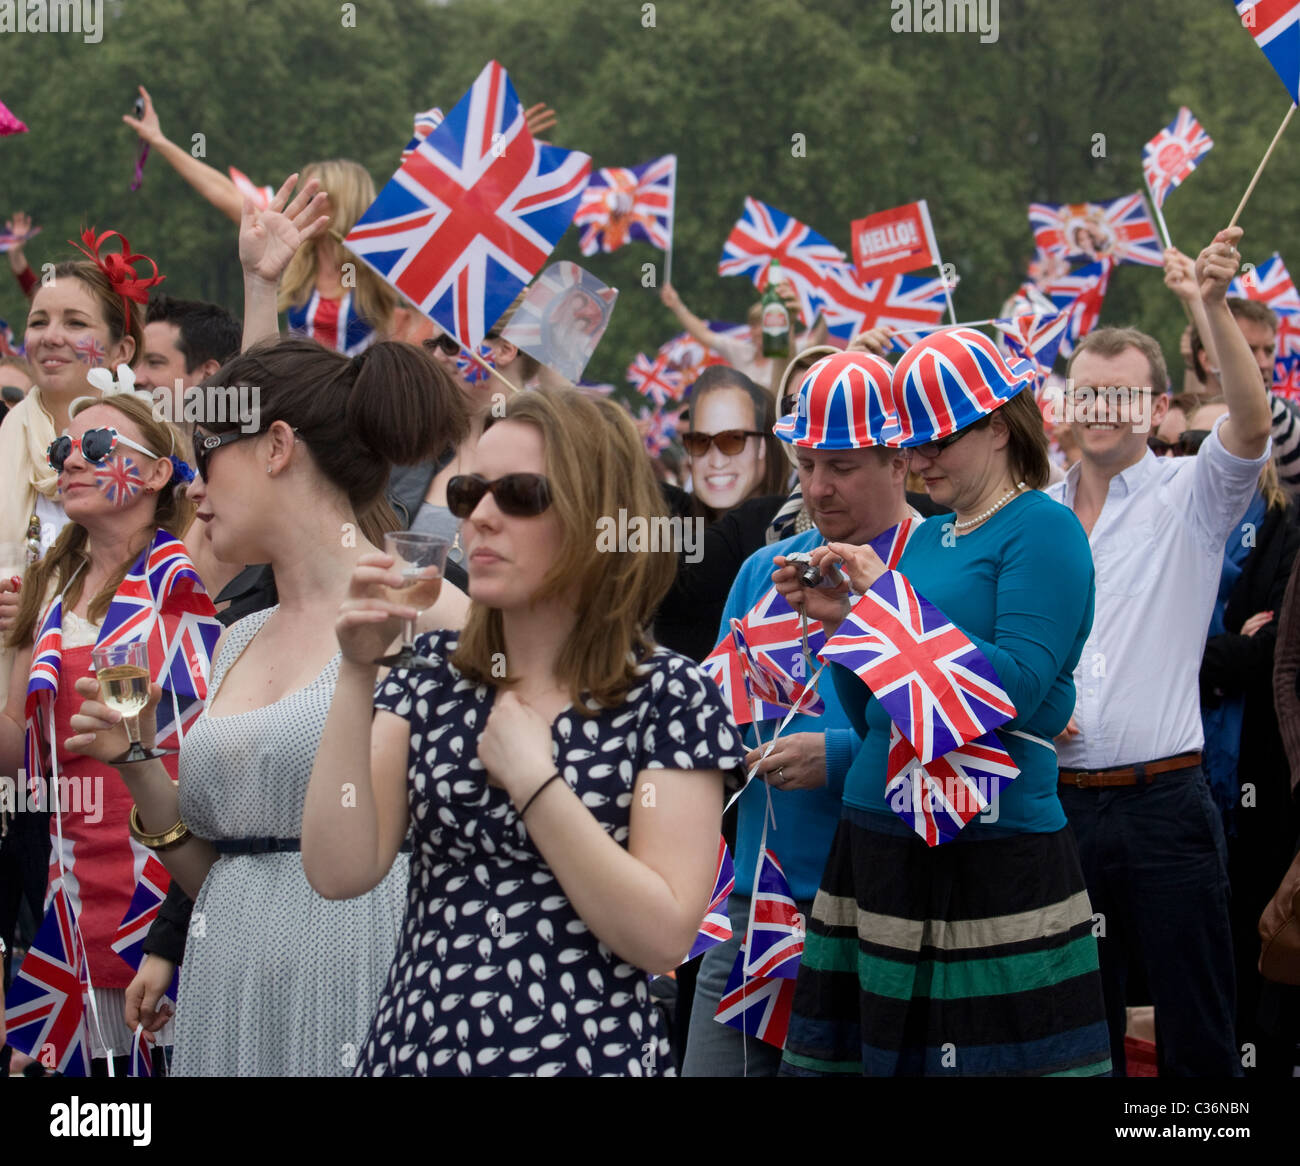 royal wedding hyde park reveller with union jack flags and hat - Stock Image